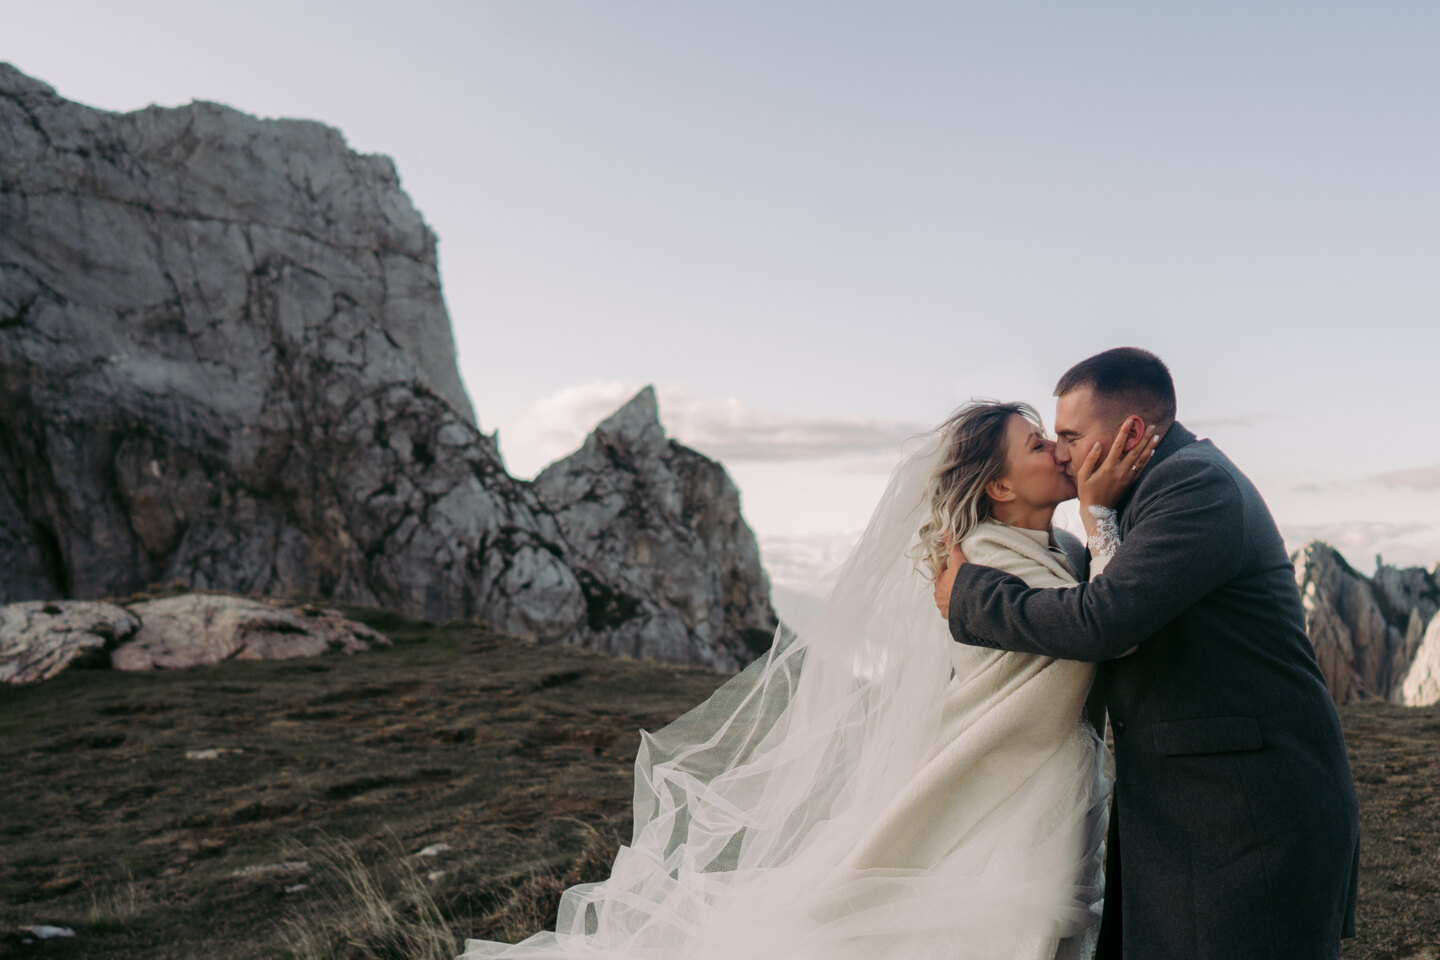 Couple photoshoot in Italy: Bride and groom kissing high in the mountains, despite the strong wind and cold